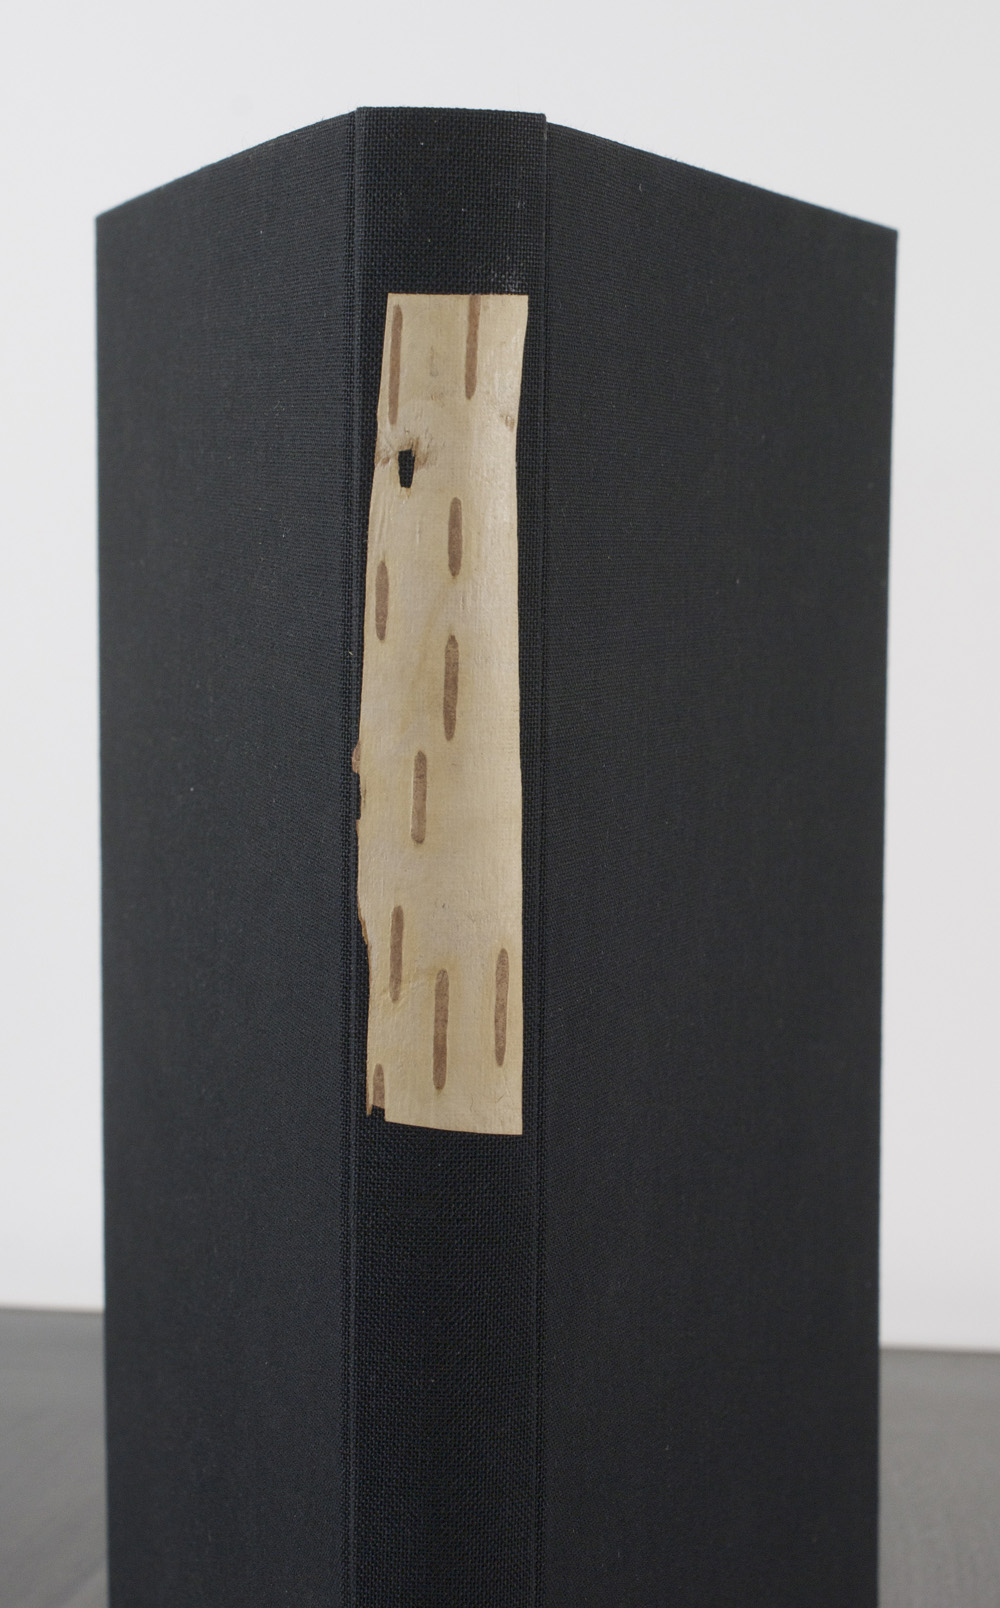 Arini Esarey   Birch Journal , 2010  Birch bark, book cloth, thread, paper